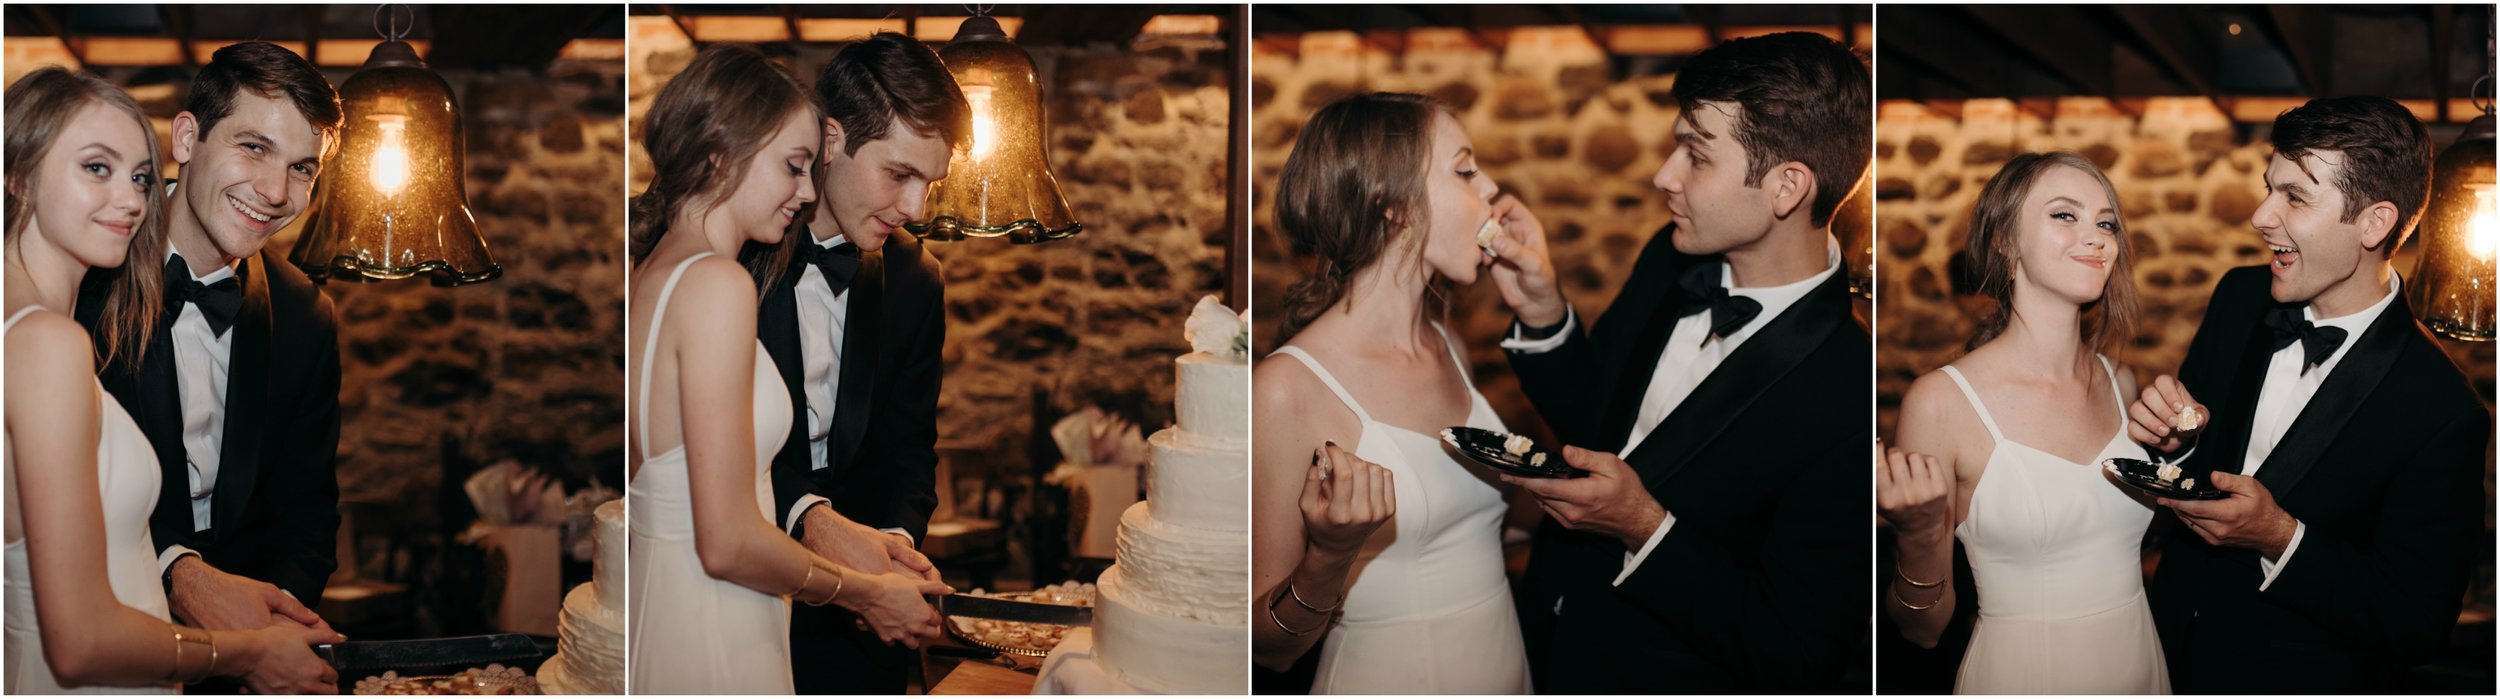 jake-kendra-erie-wedding-cake-cutting.jpg